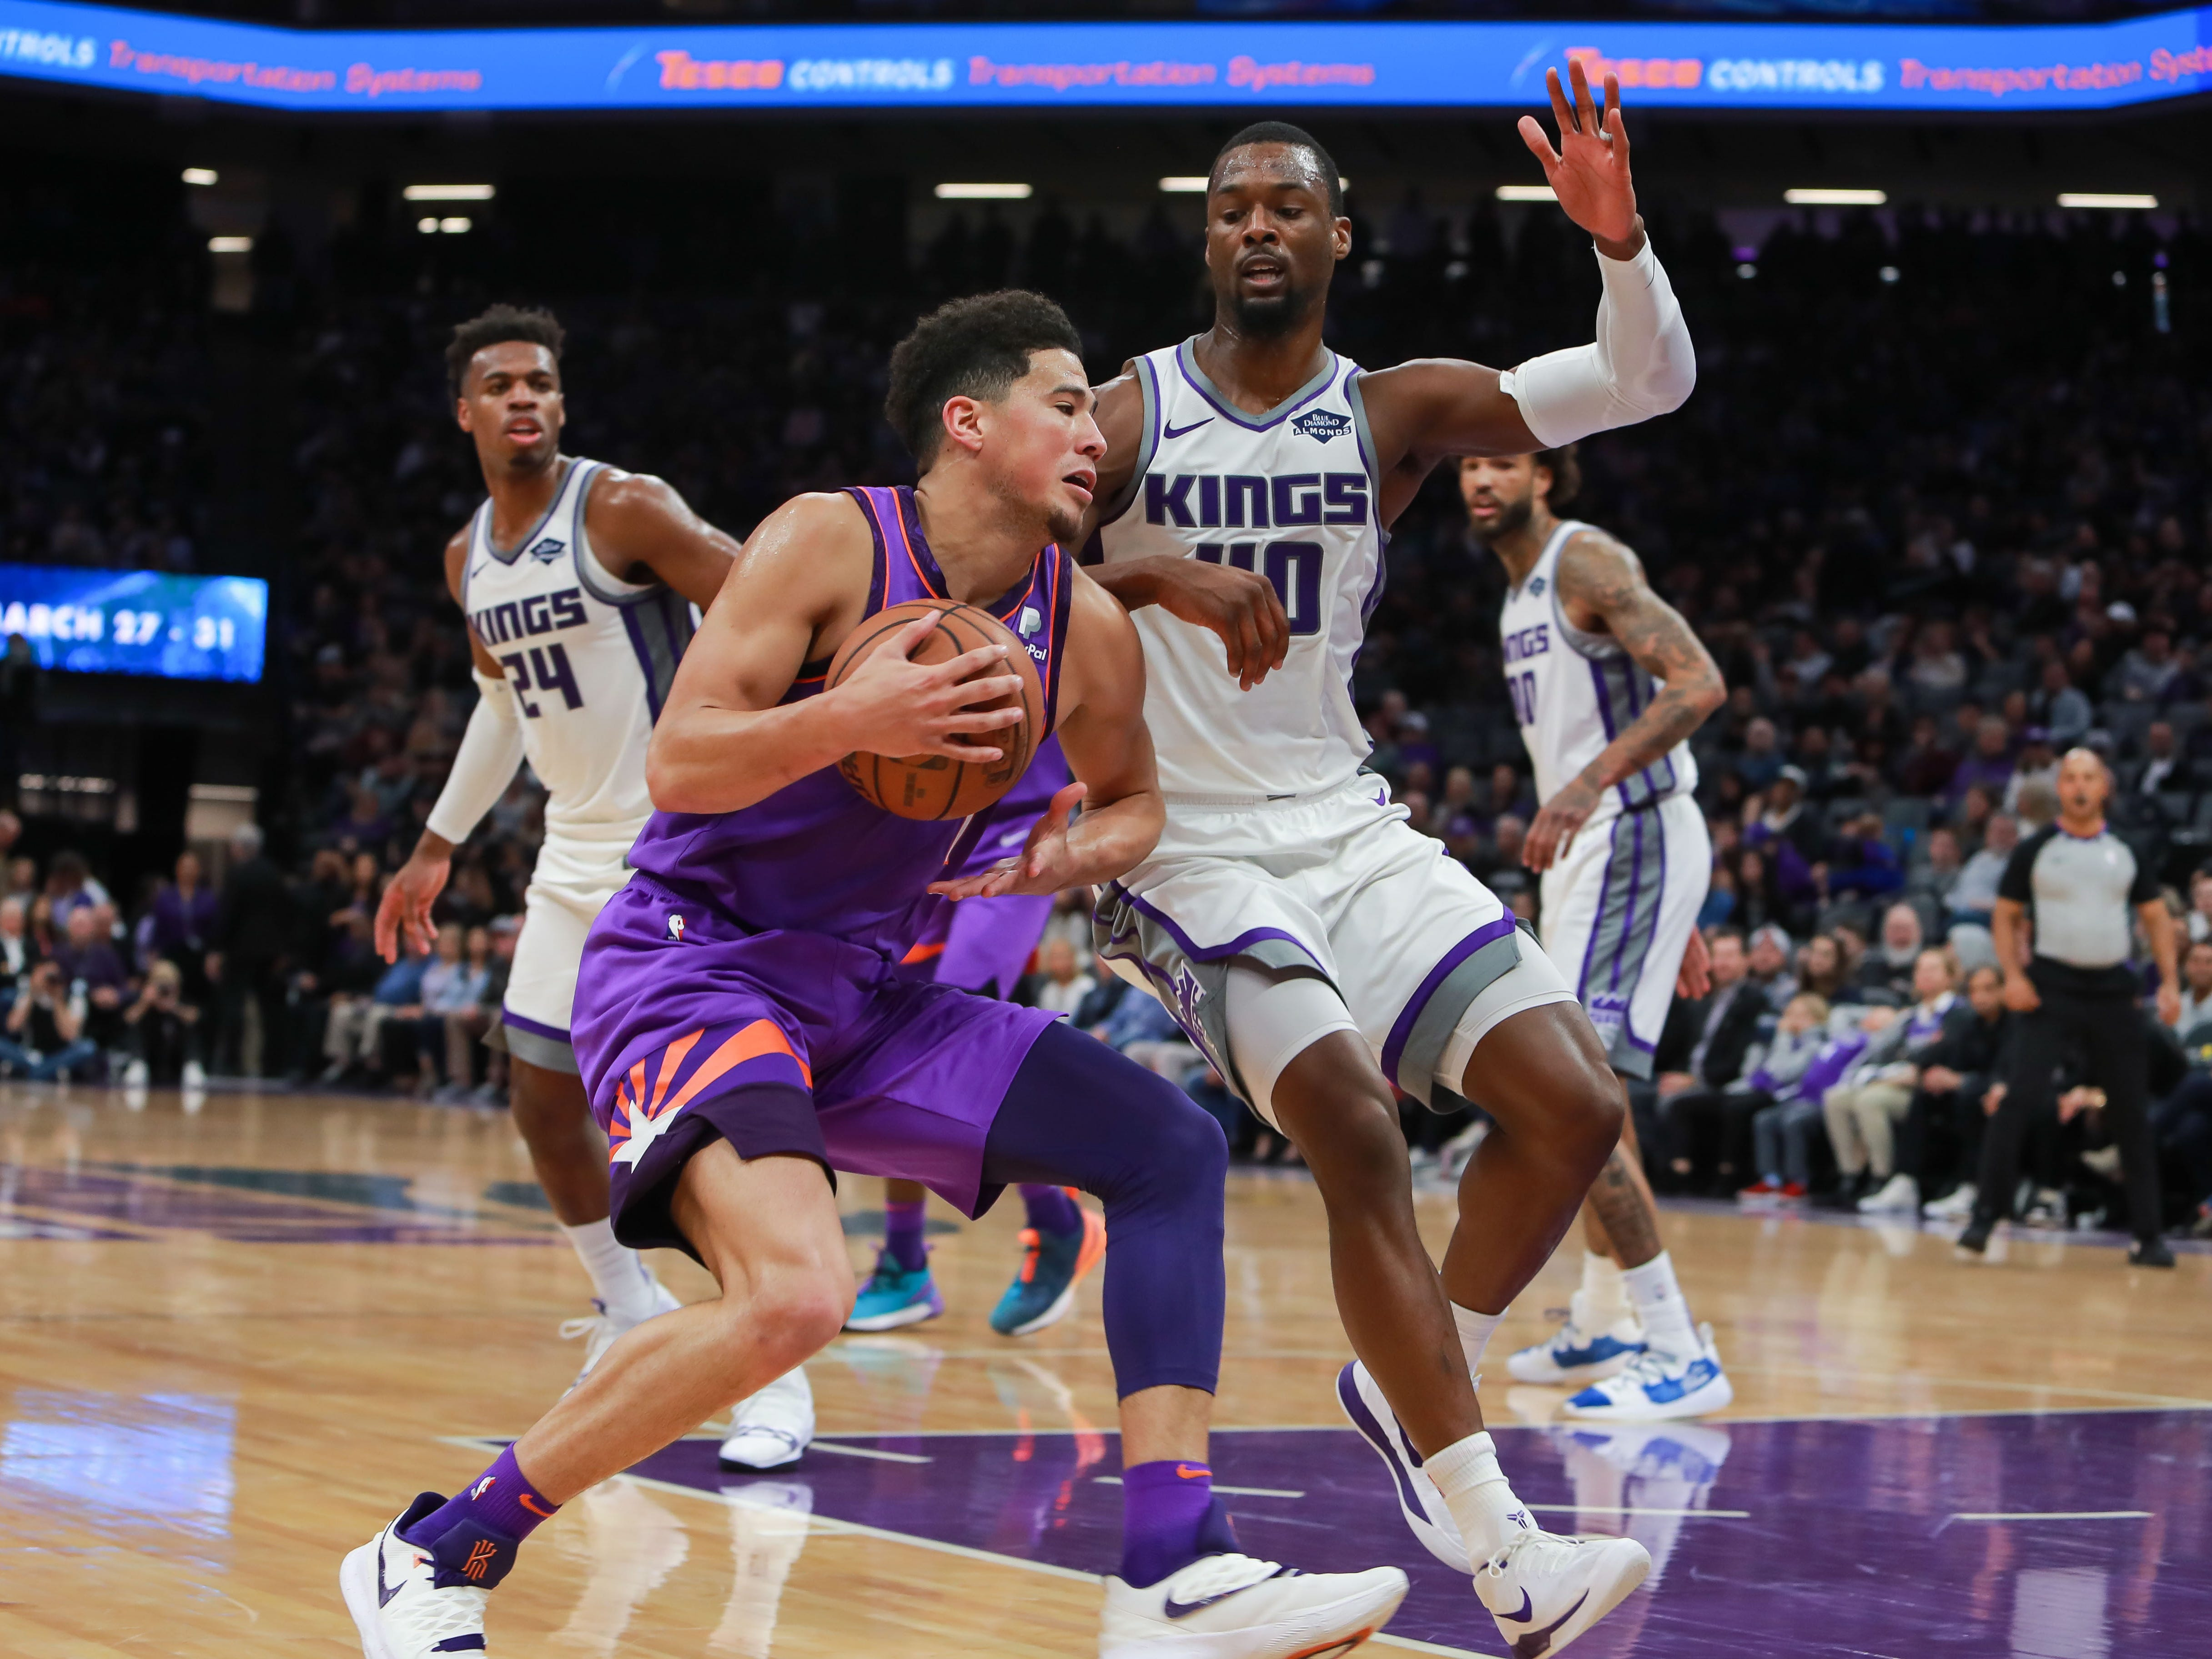 Mar 23, 2019; Sacramento, CA, USA; Phoenix Suns guard Devin Booker (1) dribbles the ball against Sacramento Kings forward Harrison Barnes (40) during the second quarter at Golden 1 Center.